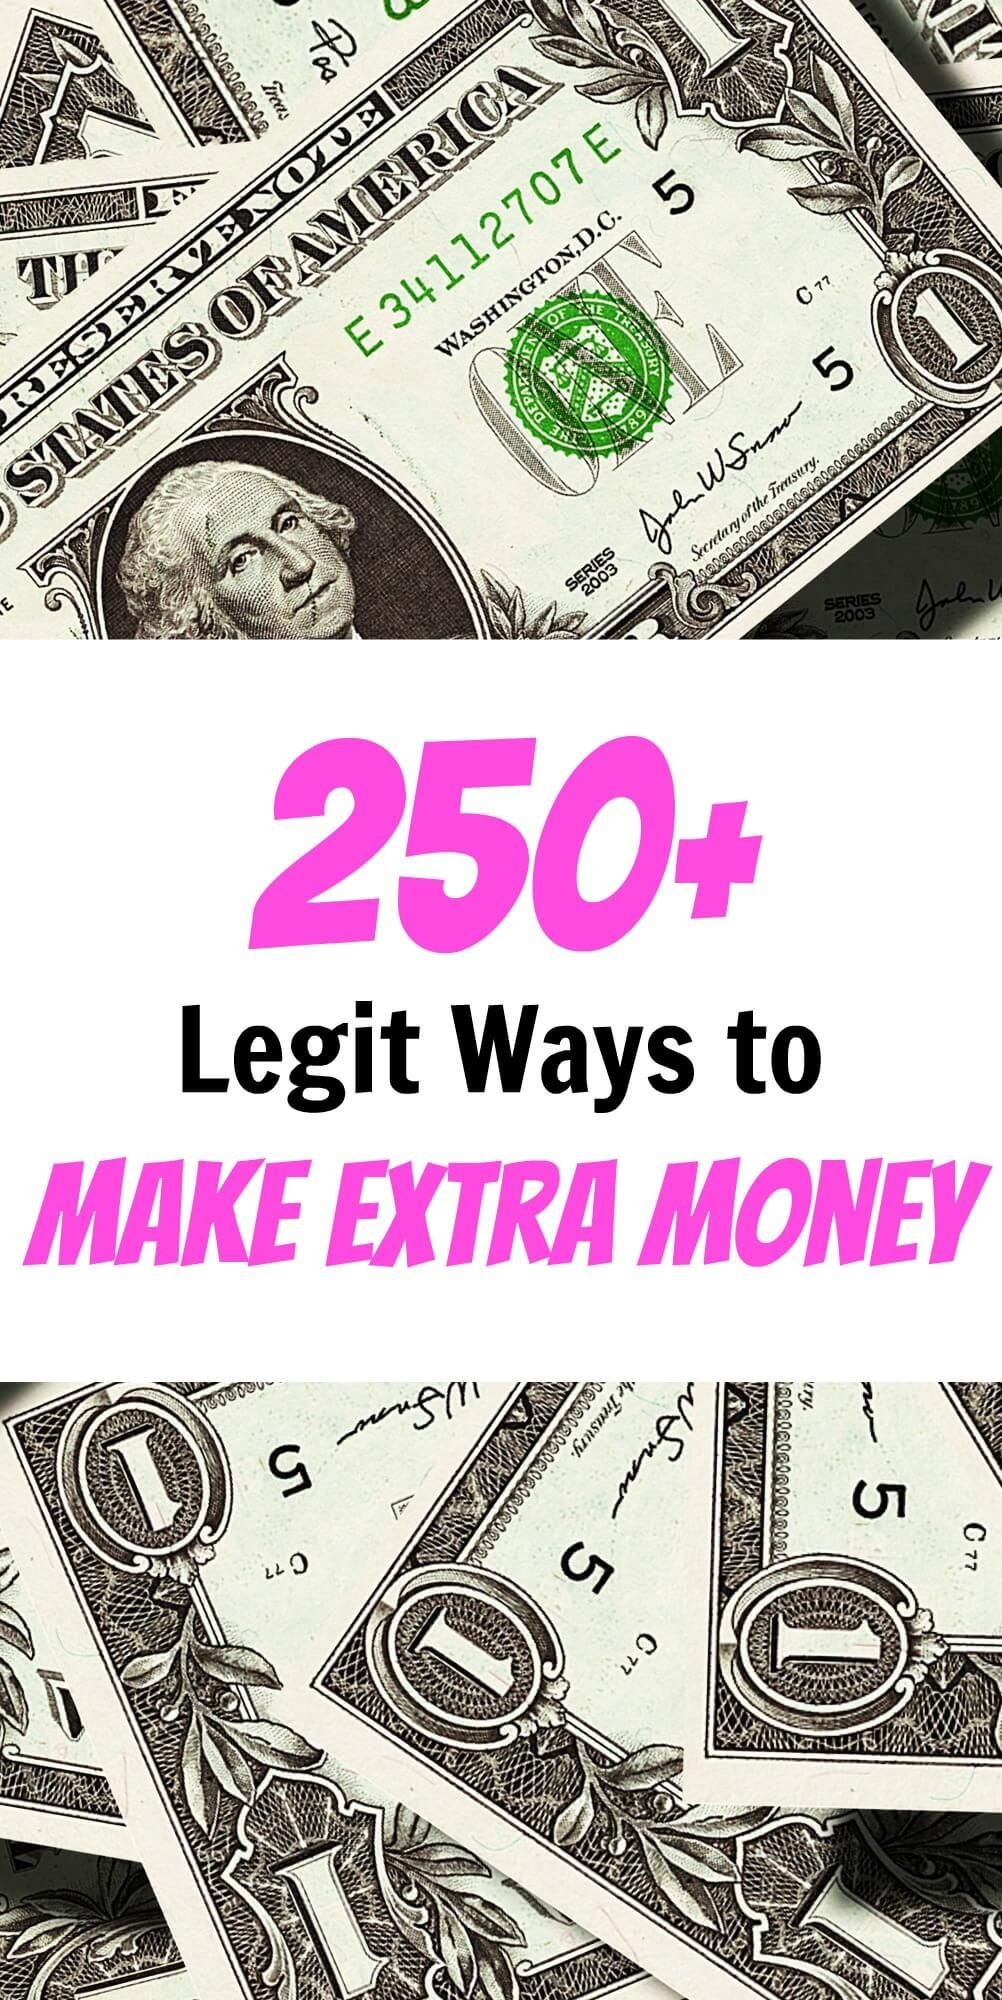 250+ Proven Ways to Make Extra Money in 2018: The Ultimate Guide ...